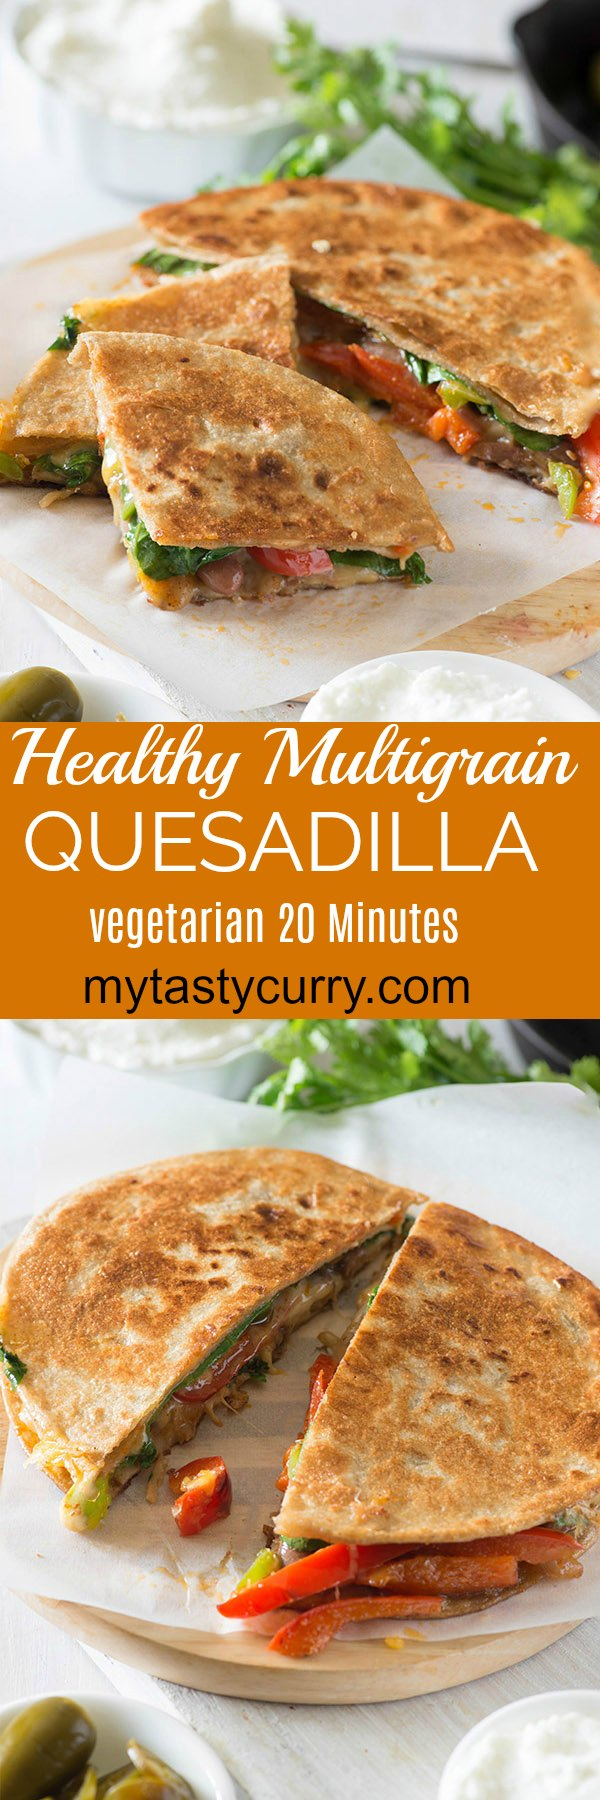 Delicious and healthier Quesadilla recipe made with using multigrain tortillas. Bursting with Mexican flavors, lots of veggies and beans this healthy quesadilla is a perfect recipe to enjoy for any meal.